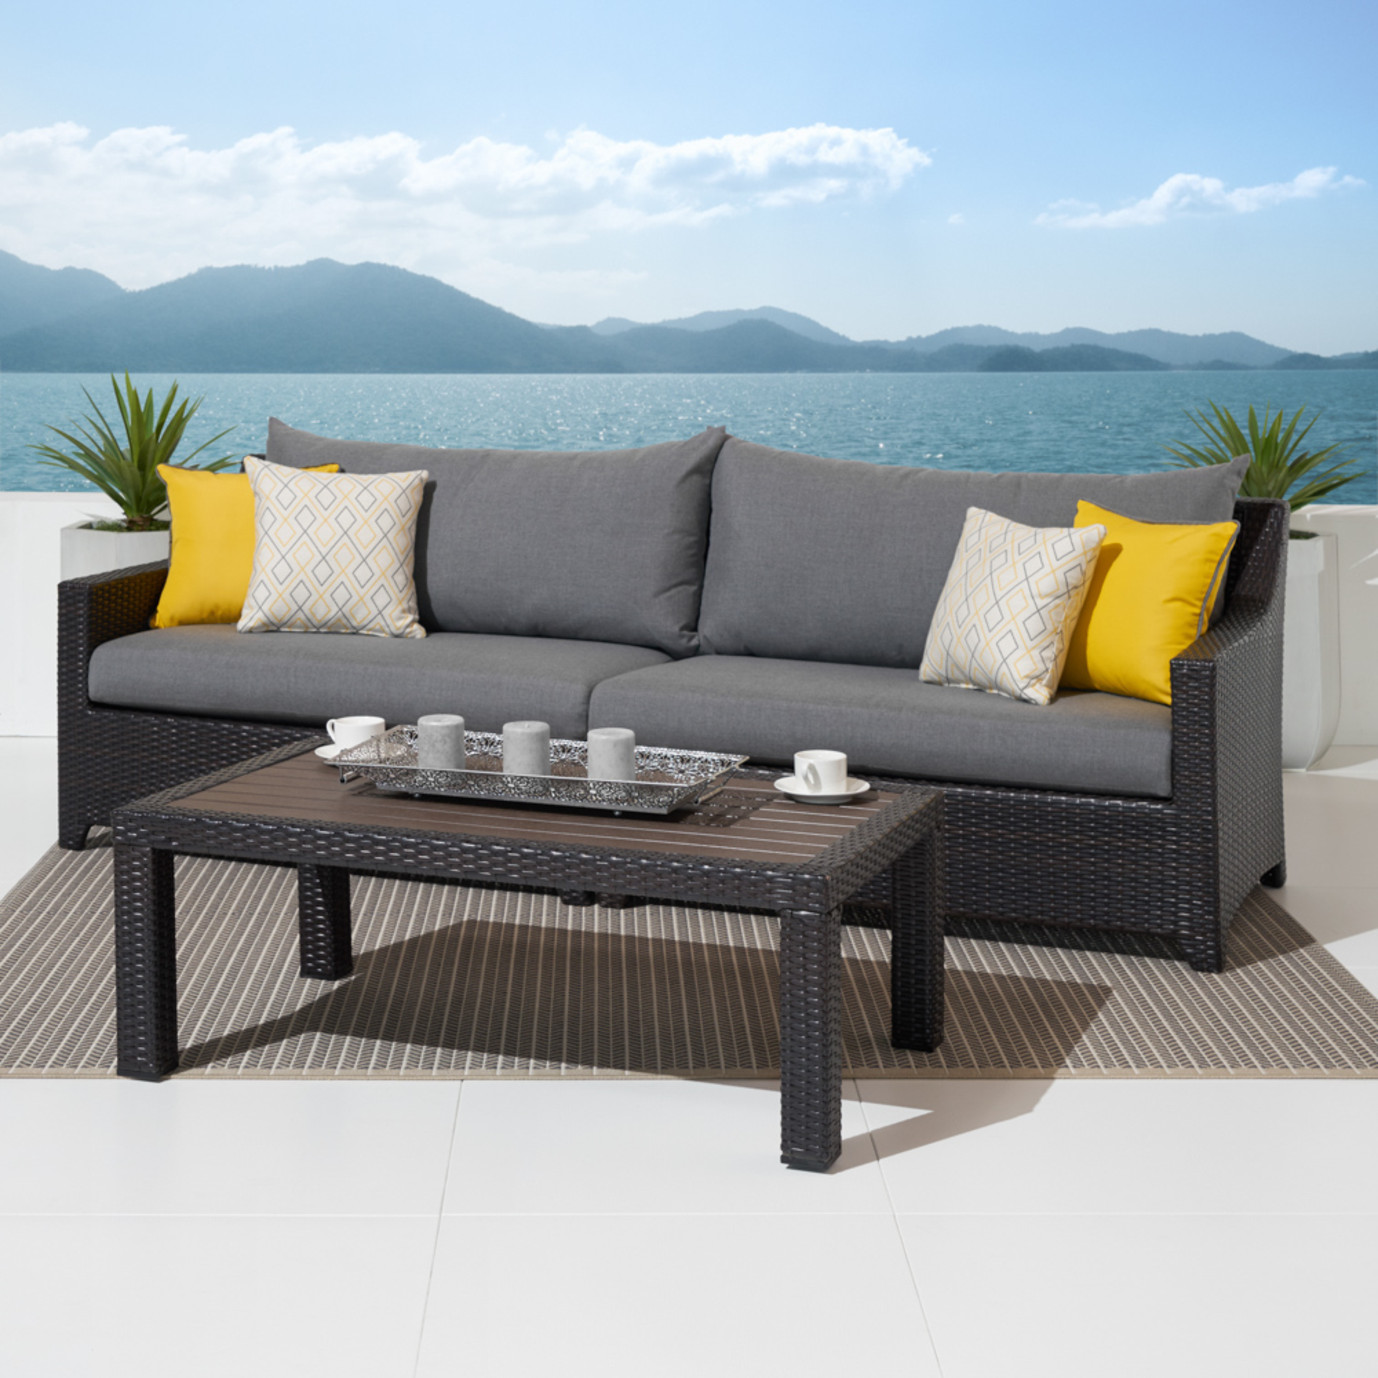 Deco™ Sofa with Deluxe Coffee Table - Sunflower Yellow